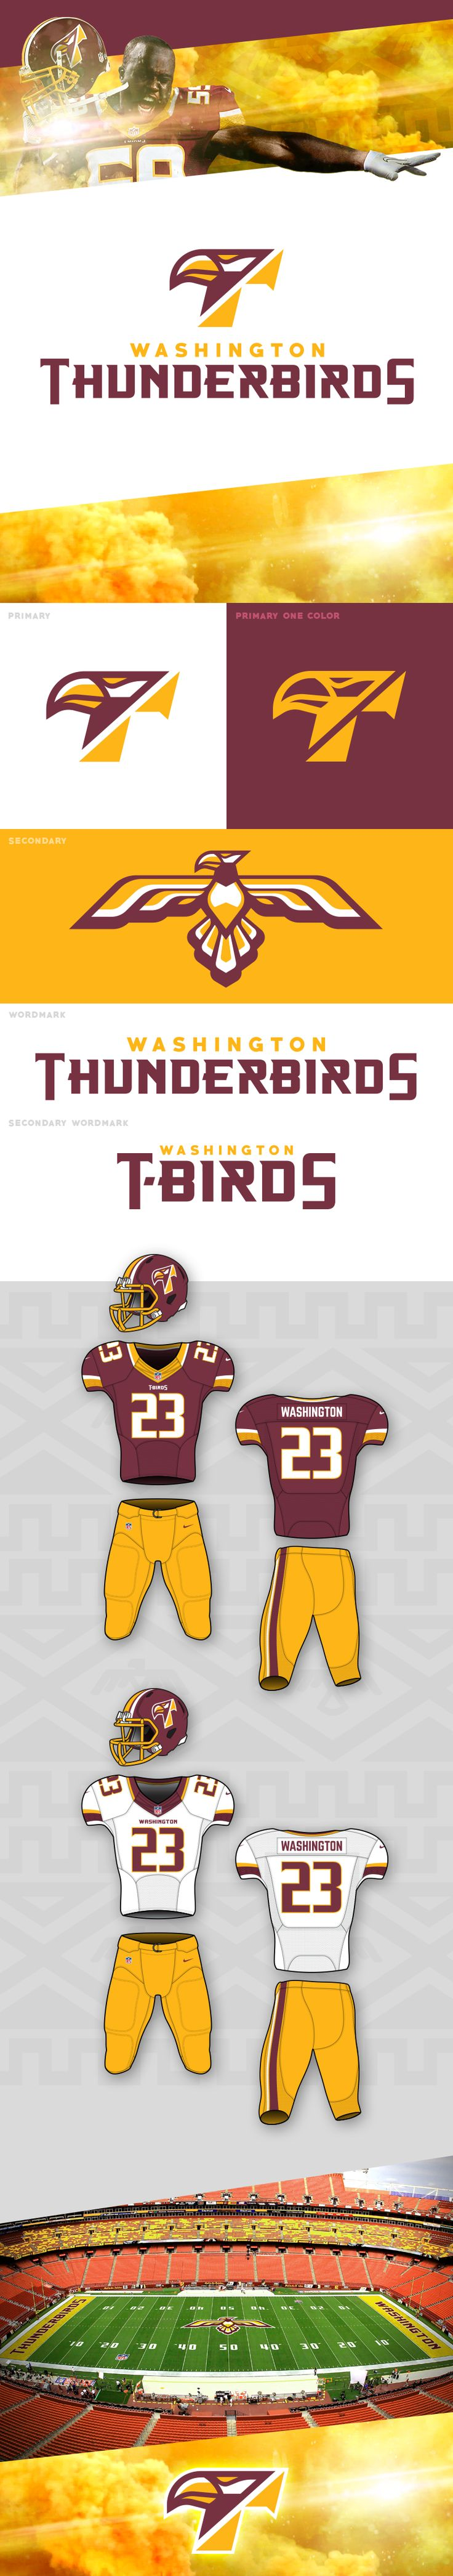 Due to the controversy of the Washington Redskin's team name, many people are calling for the rename of the team to something less offensive. I wanted to take a stab at doing just that.